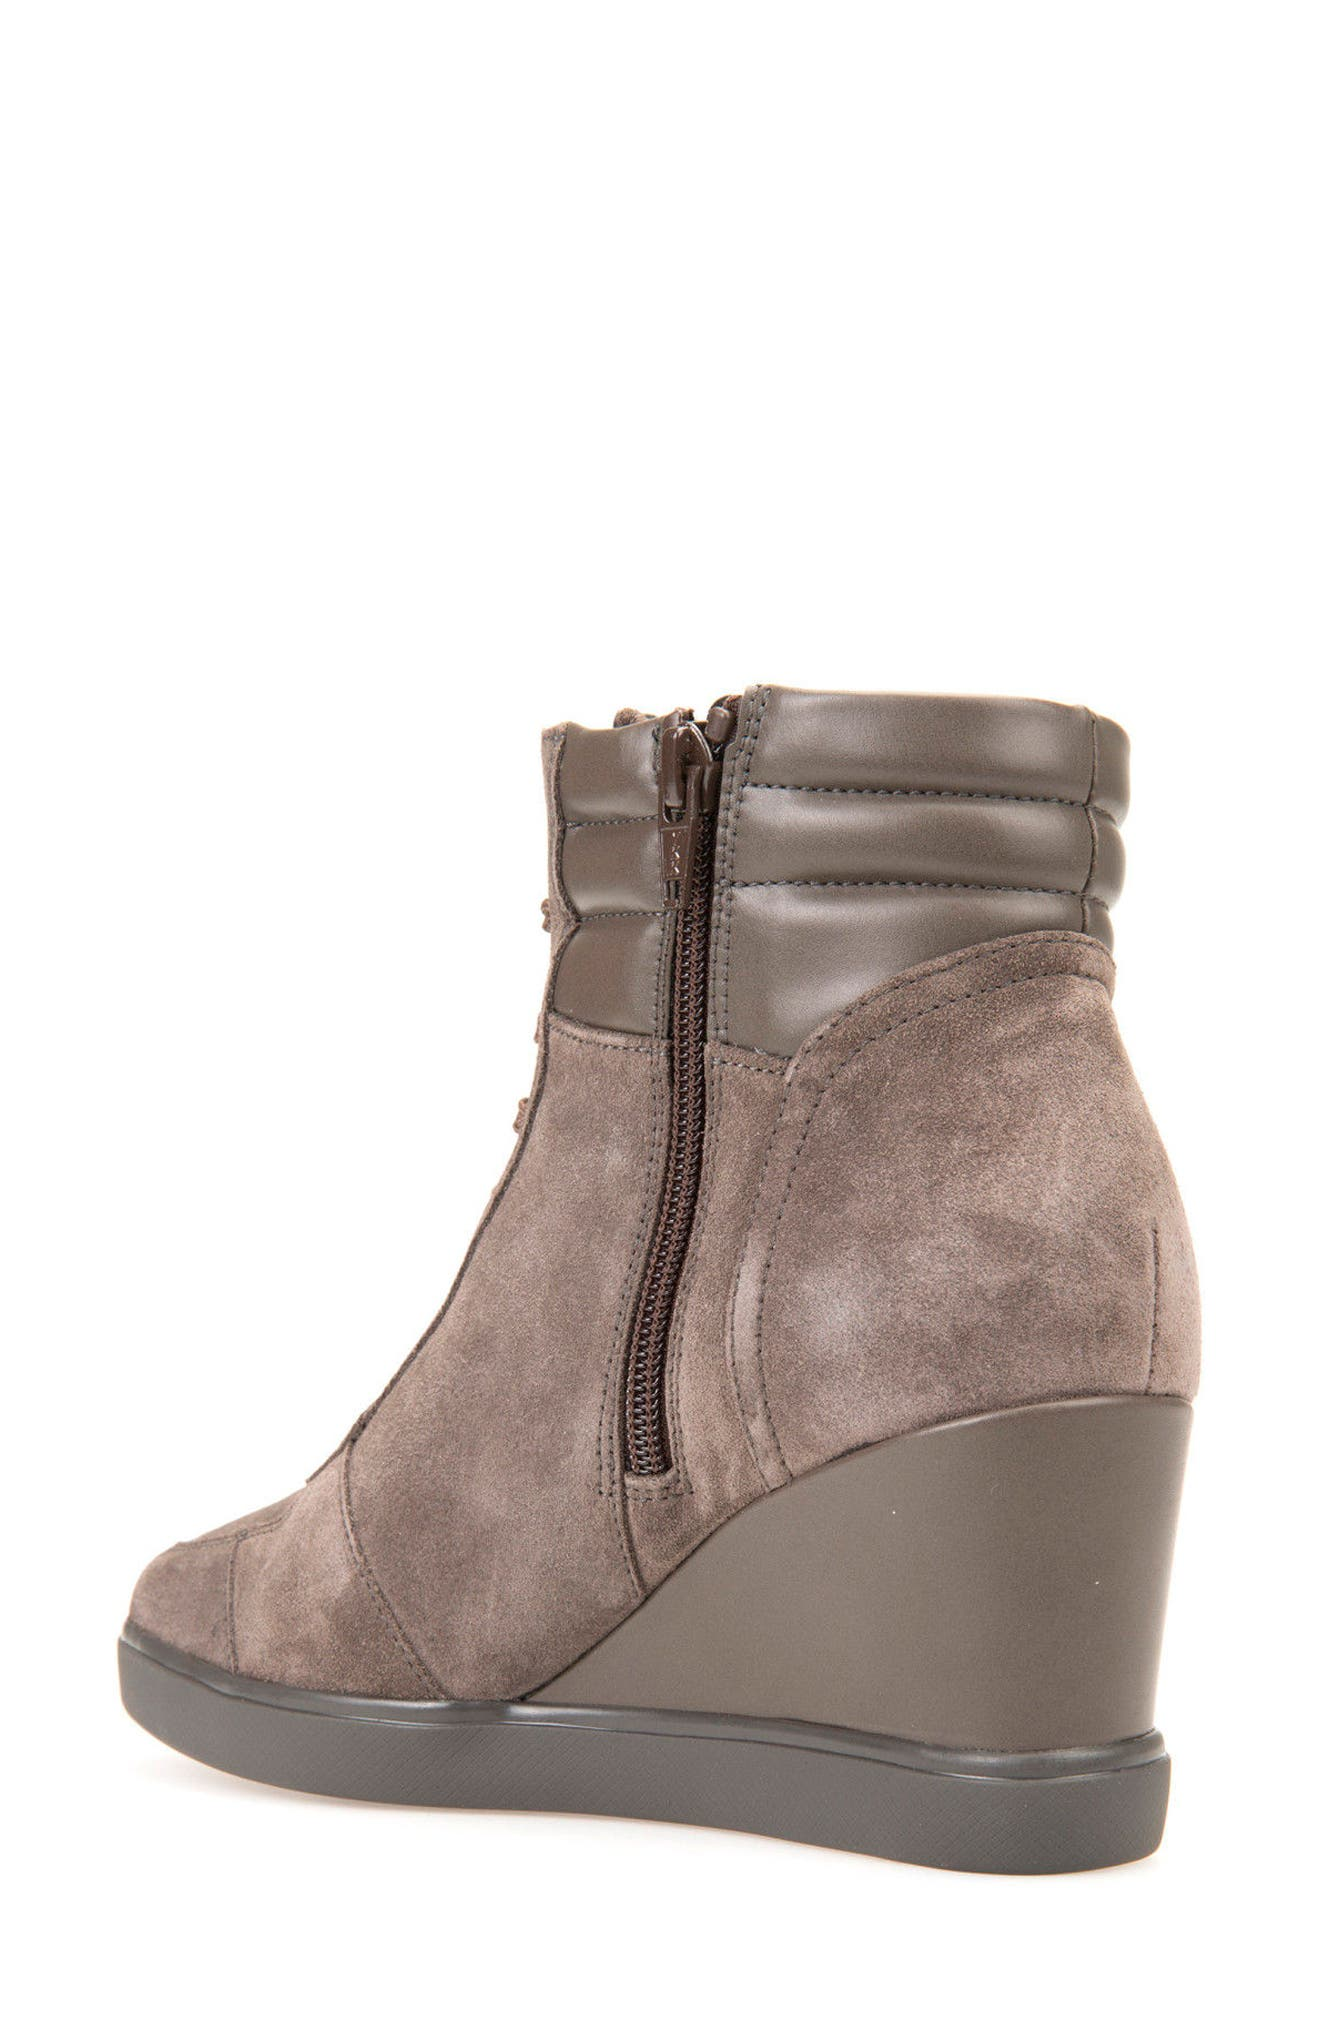 Alternate Image 2  - Geox Eleni Lace-Up Wedge Bootie (Women)